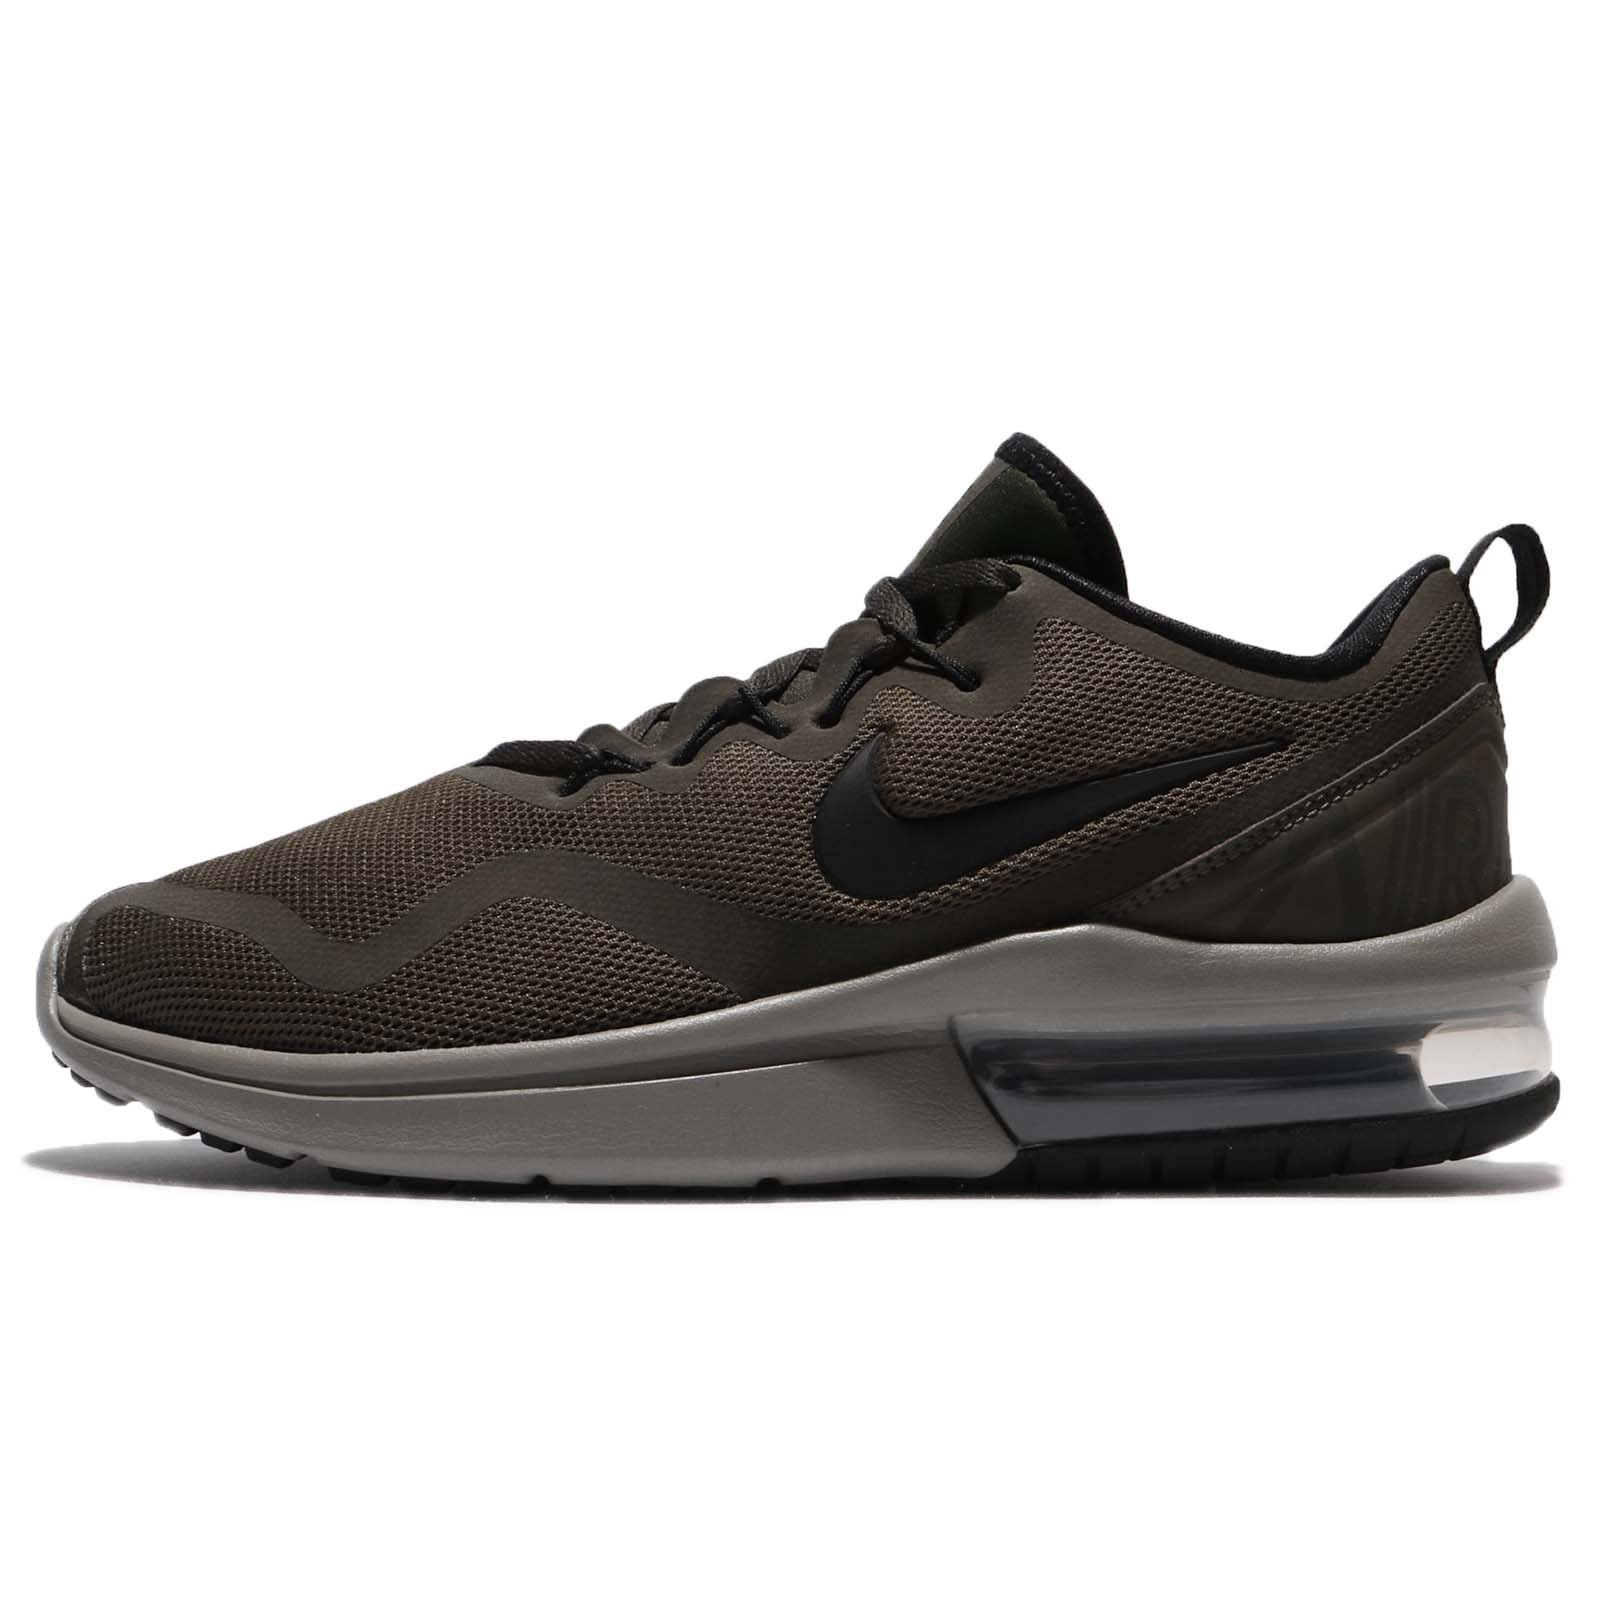 newest 070b2 27169 Galleon - NIKE Men's Air Max Fury Running Shoes (8 D(M) US, Cargo Khaki/ Black-Sequoia)